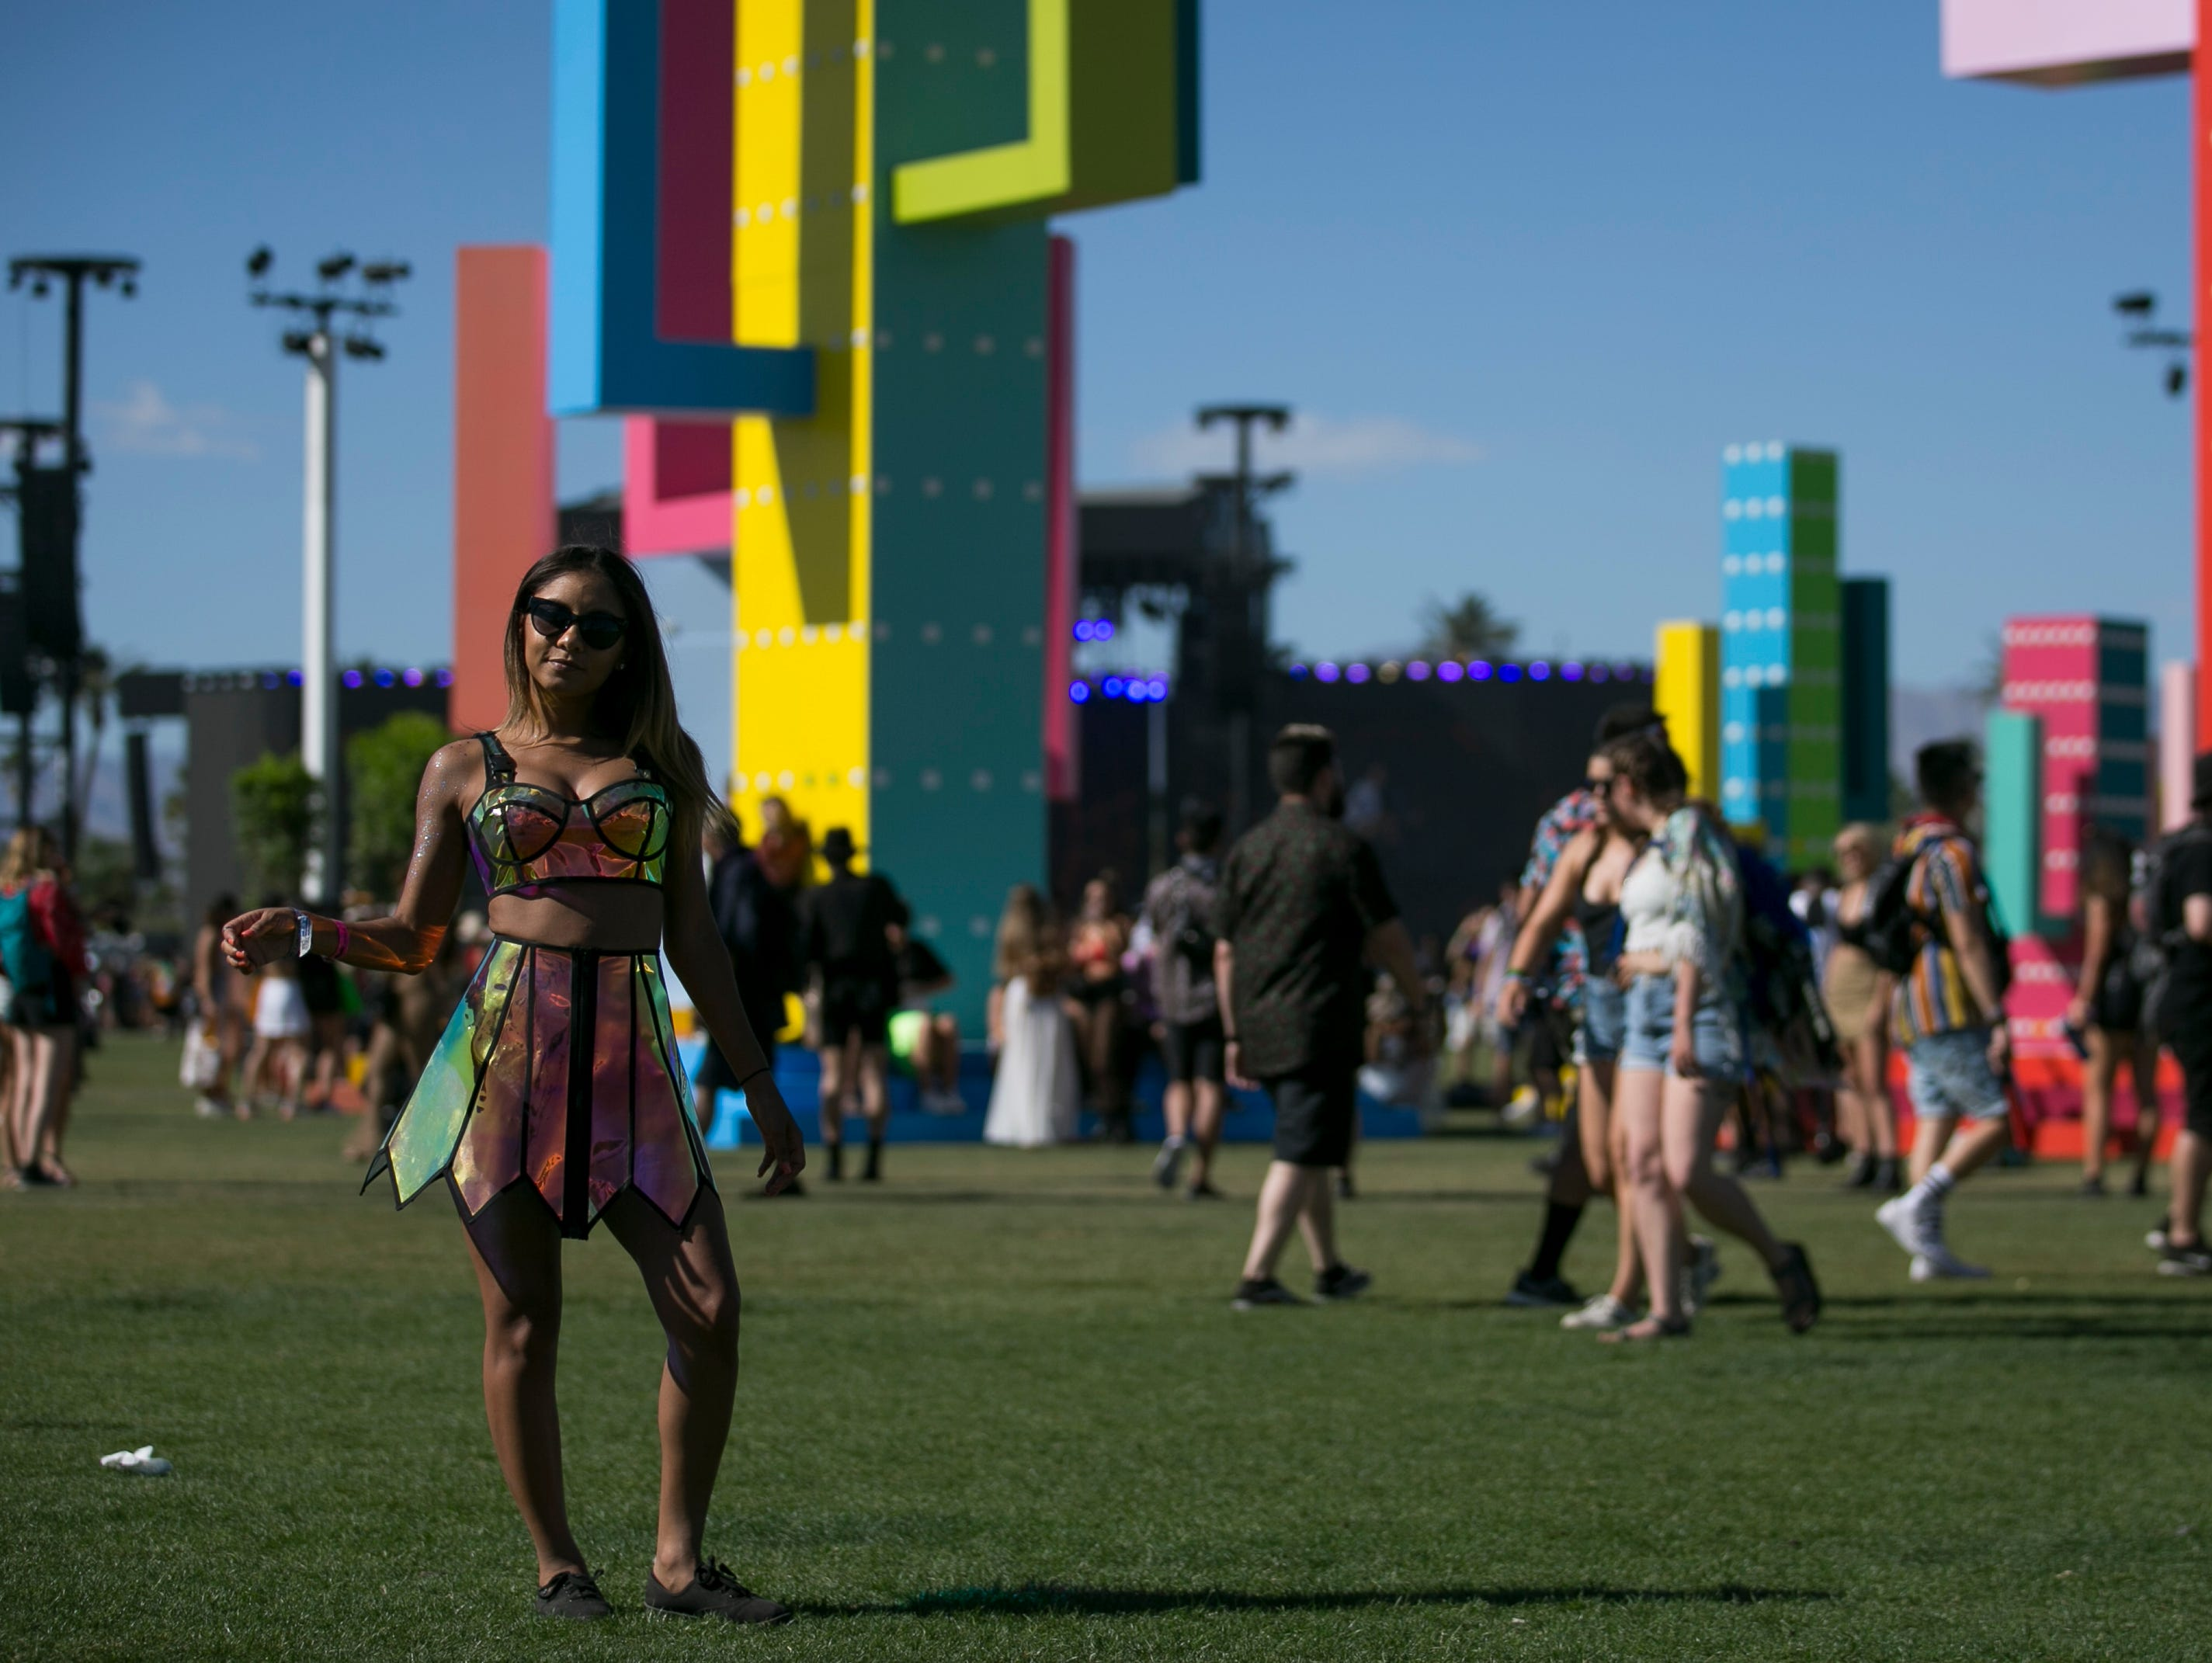 Mesly Casado, from Denver, poses in front of art installations at the Coachella Valley Music and Arts Festival in Indio, Calif. on Fri. April 12, 2019.